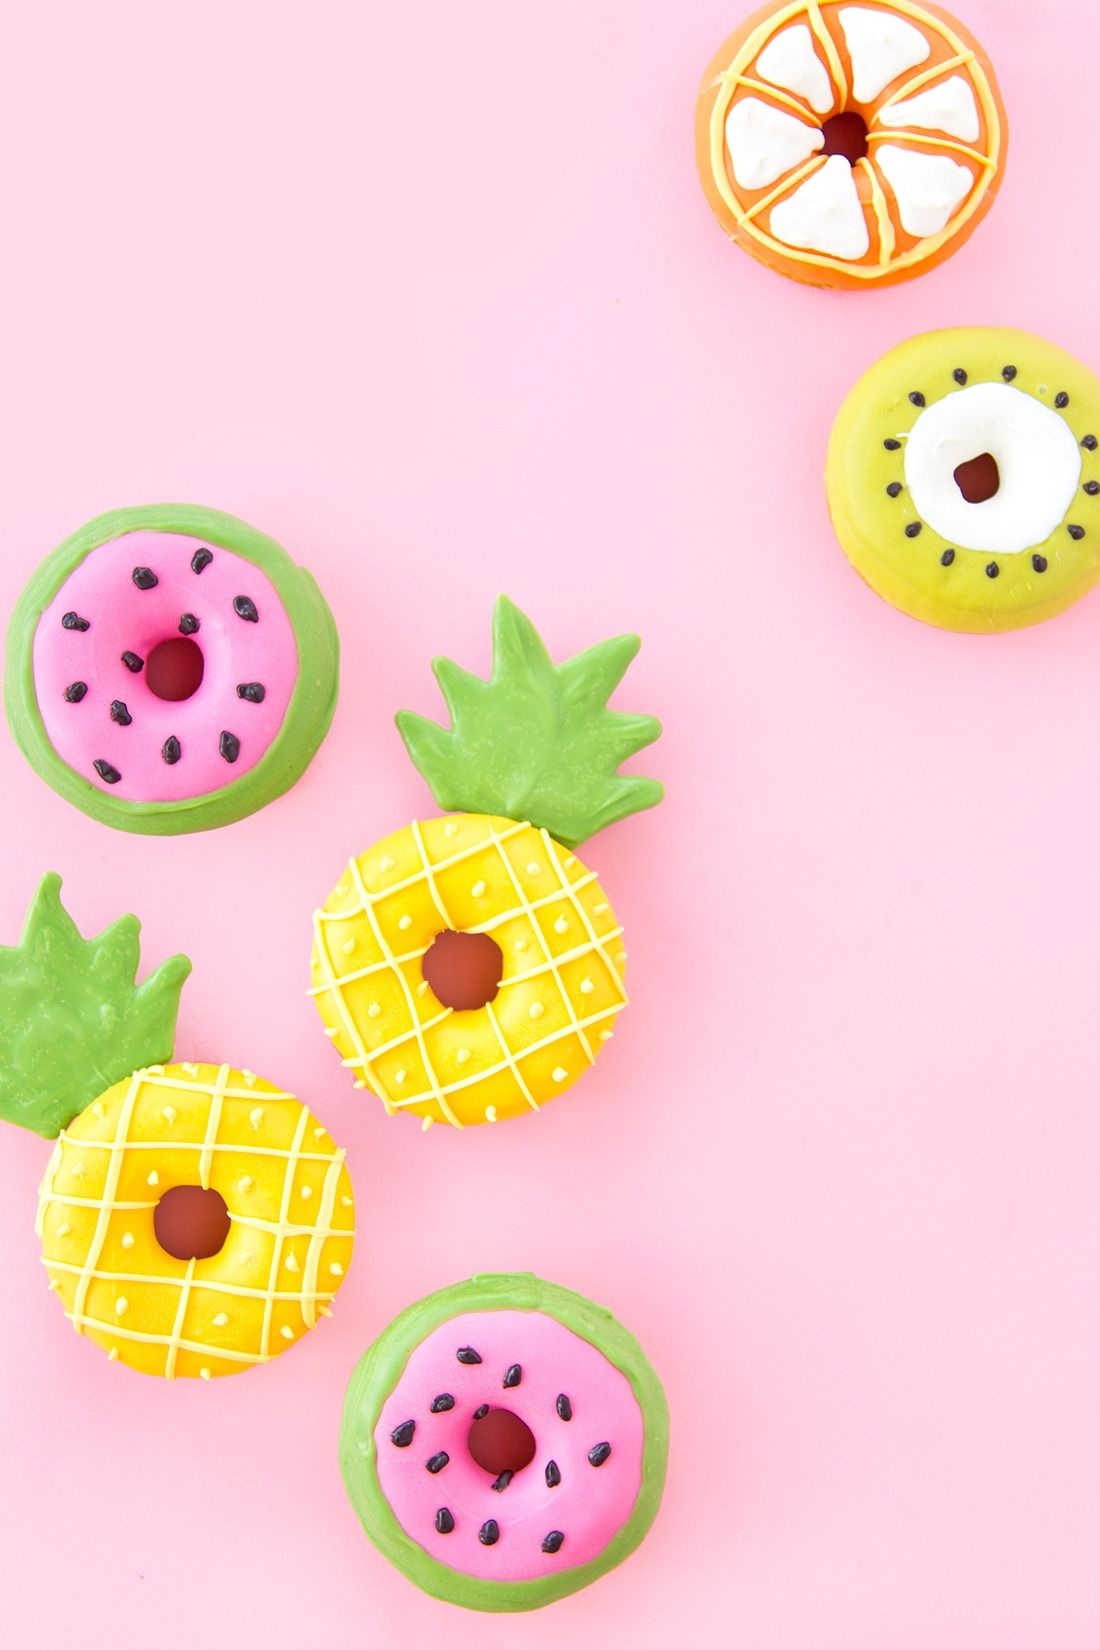 How cute are these donuts that are designed to look like